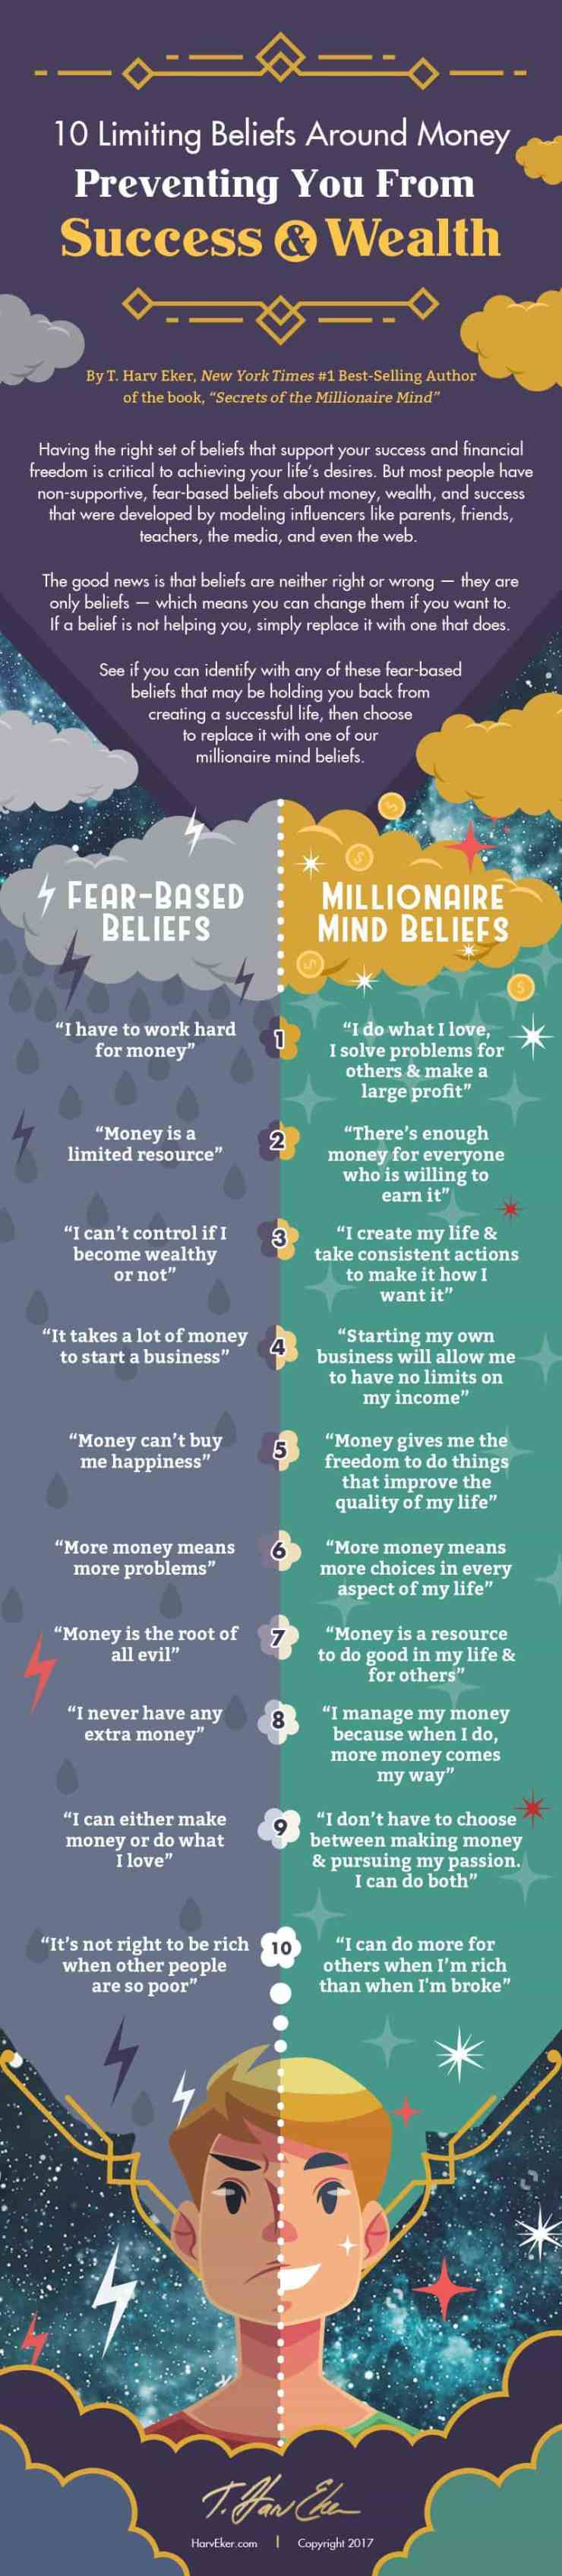 T. Harv Eker - 10 Limiting Beliefs Around Money Preventing You From Success & Wealth [Infographic]